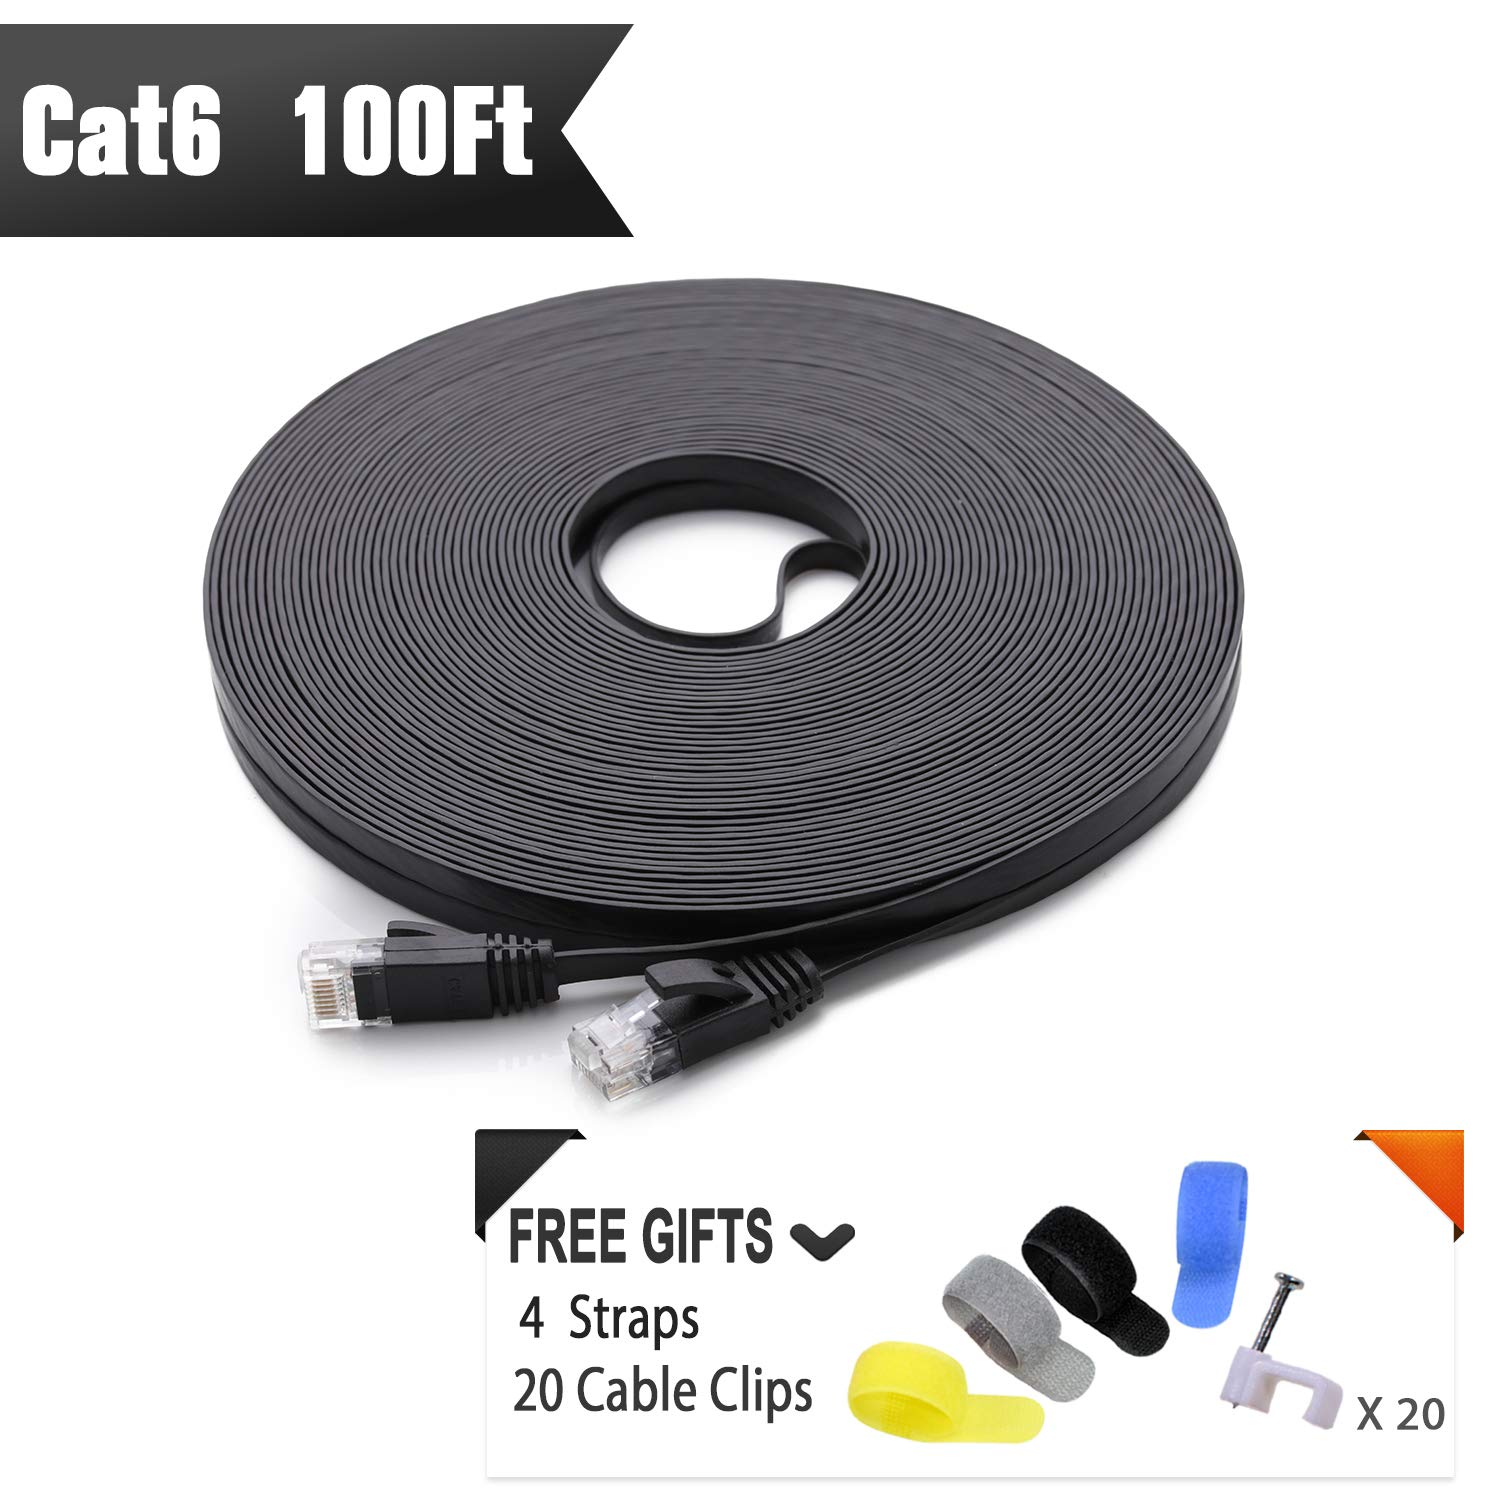 Cat 6 Ethernet Cable 100 ft (at a Cat5e Price but Higher Bandwidth) Flat Internet Network Cable - Cat6 Ethernet Patch Cable Short - Black Computer LAN Cable + Free Cable Clips and Straps by CableGeeker